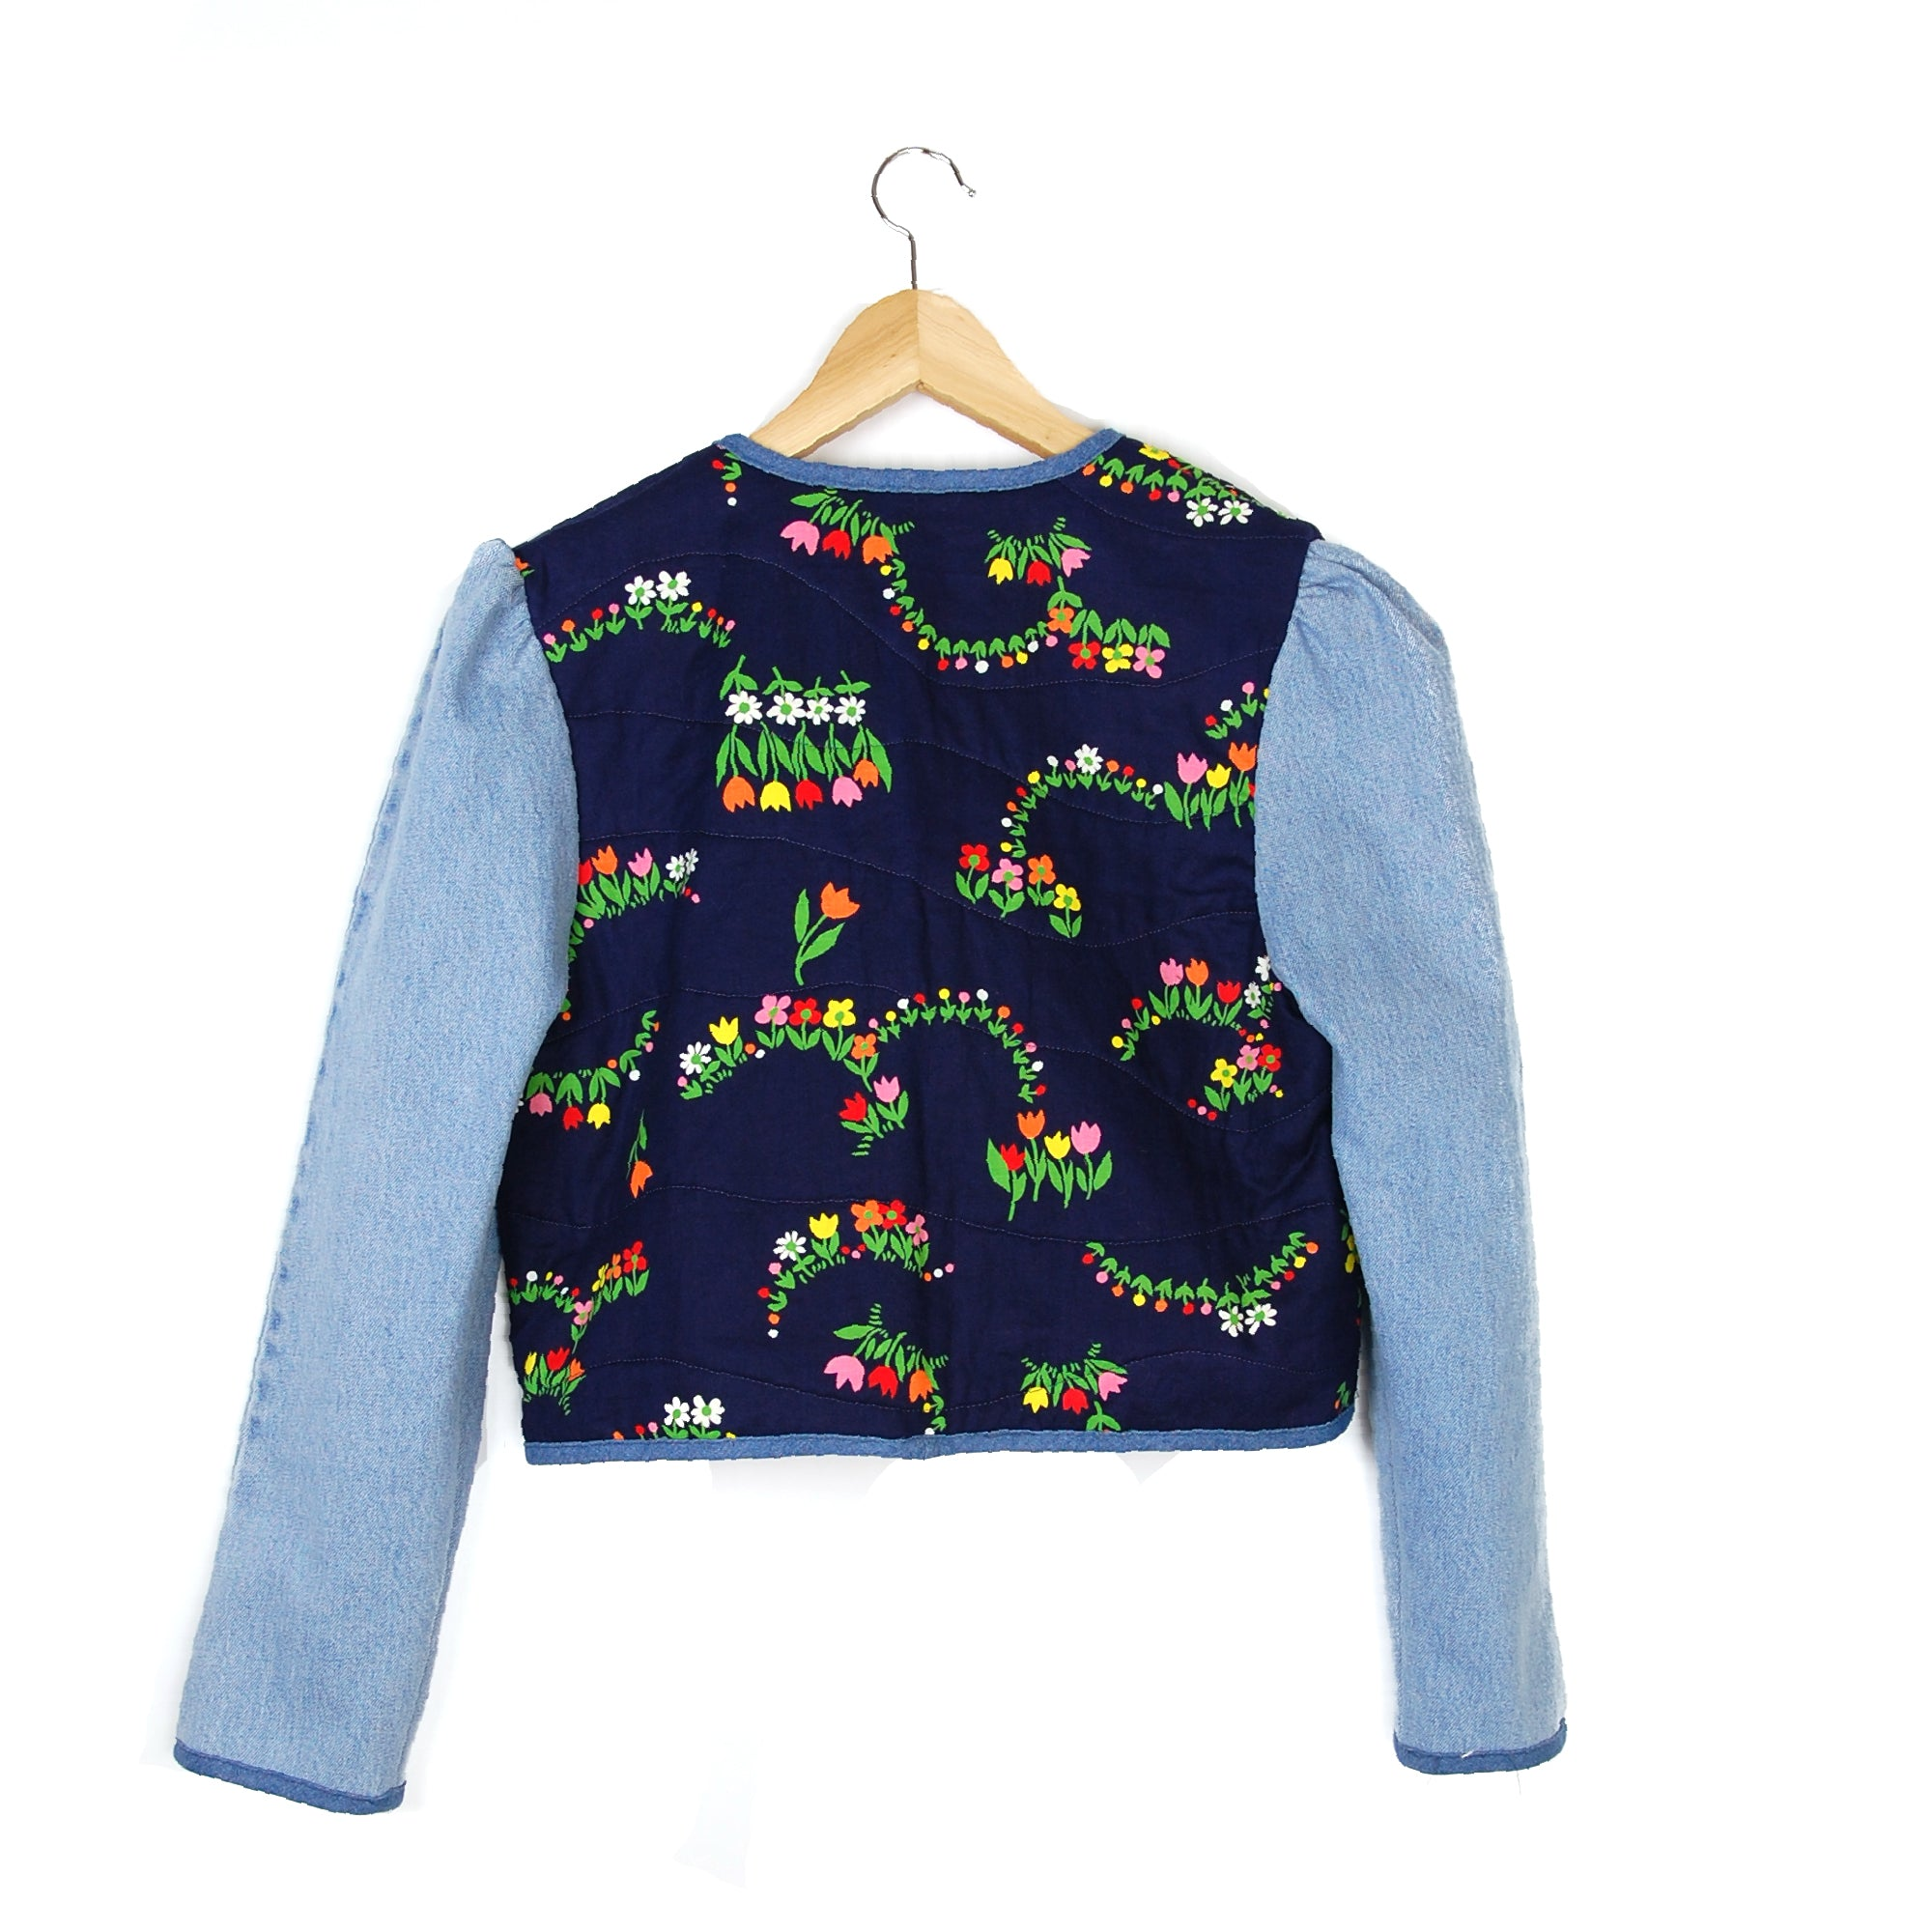 TEENY TULIPS 1 QUILTED JACKET - Late to the Party